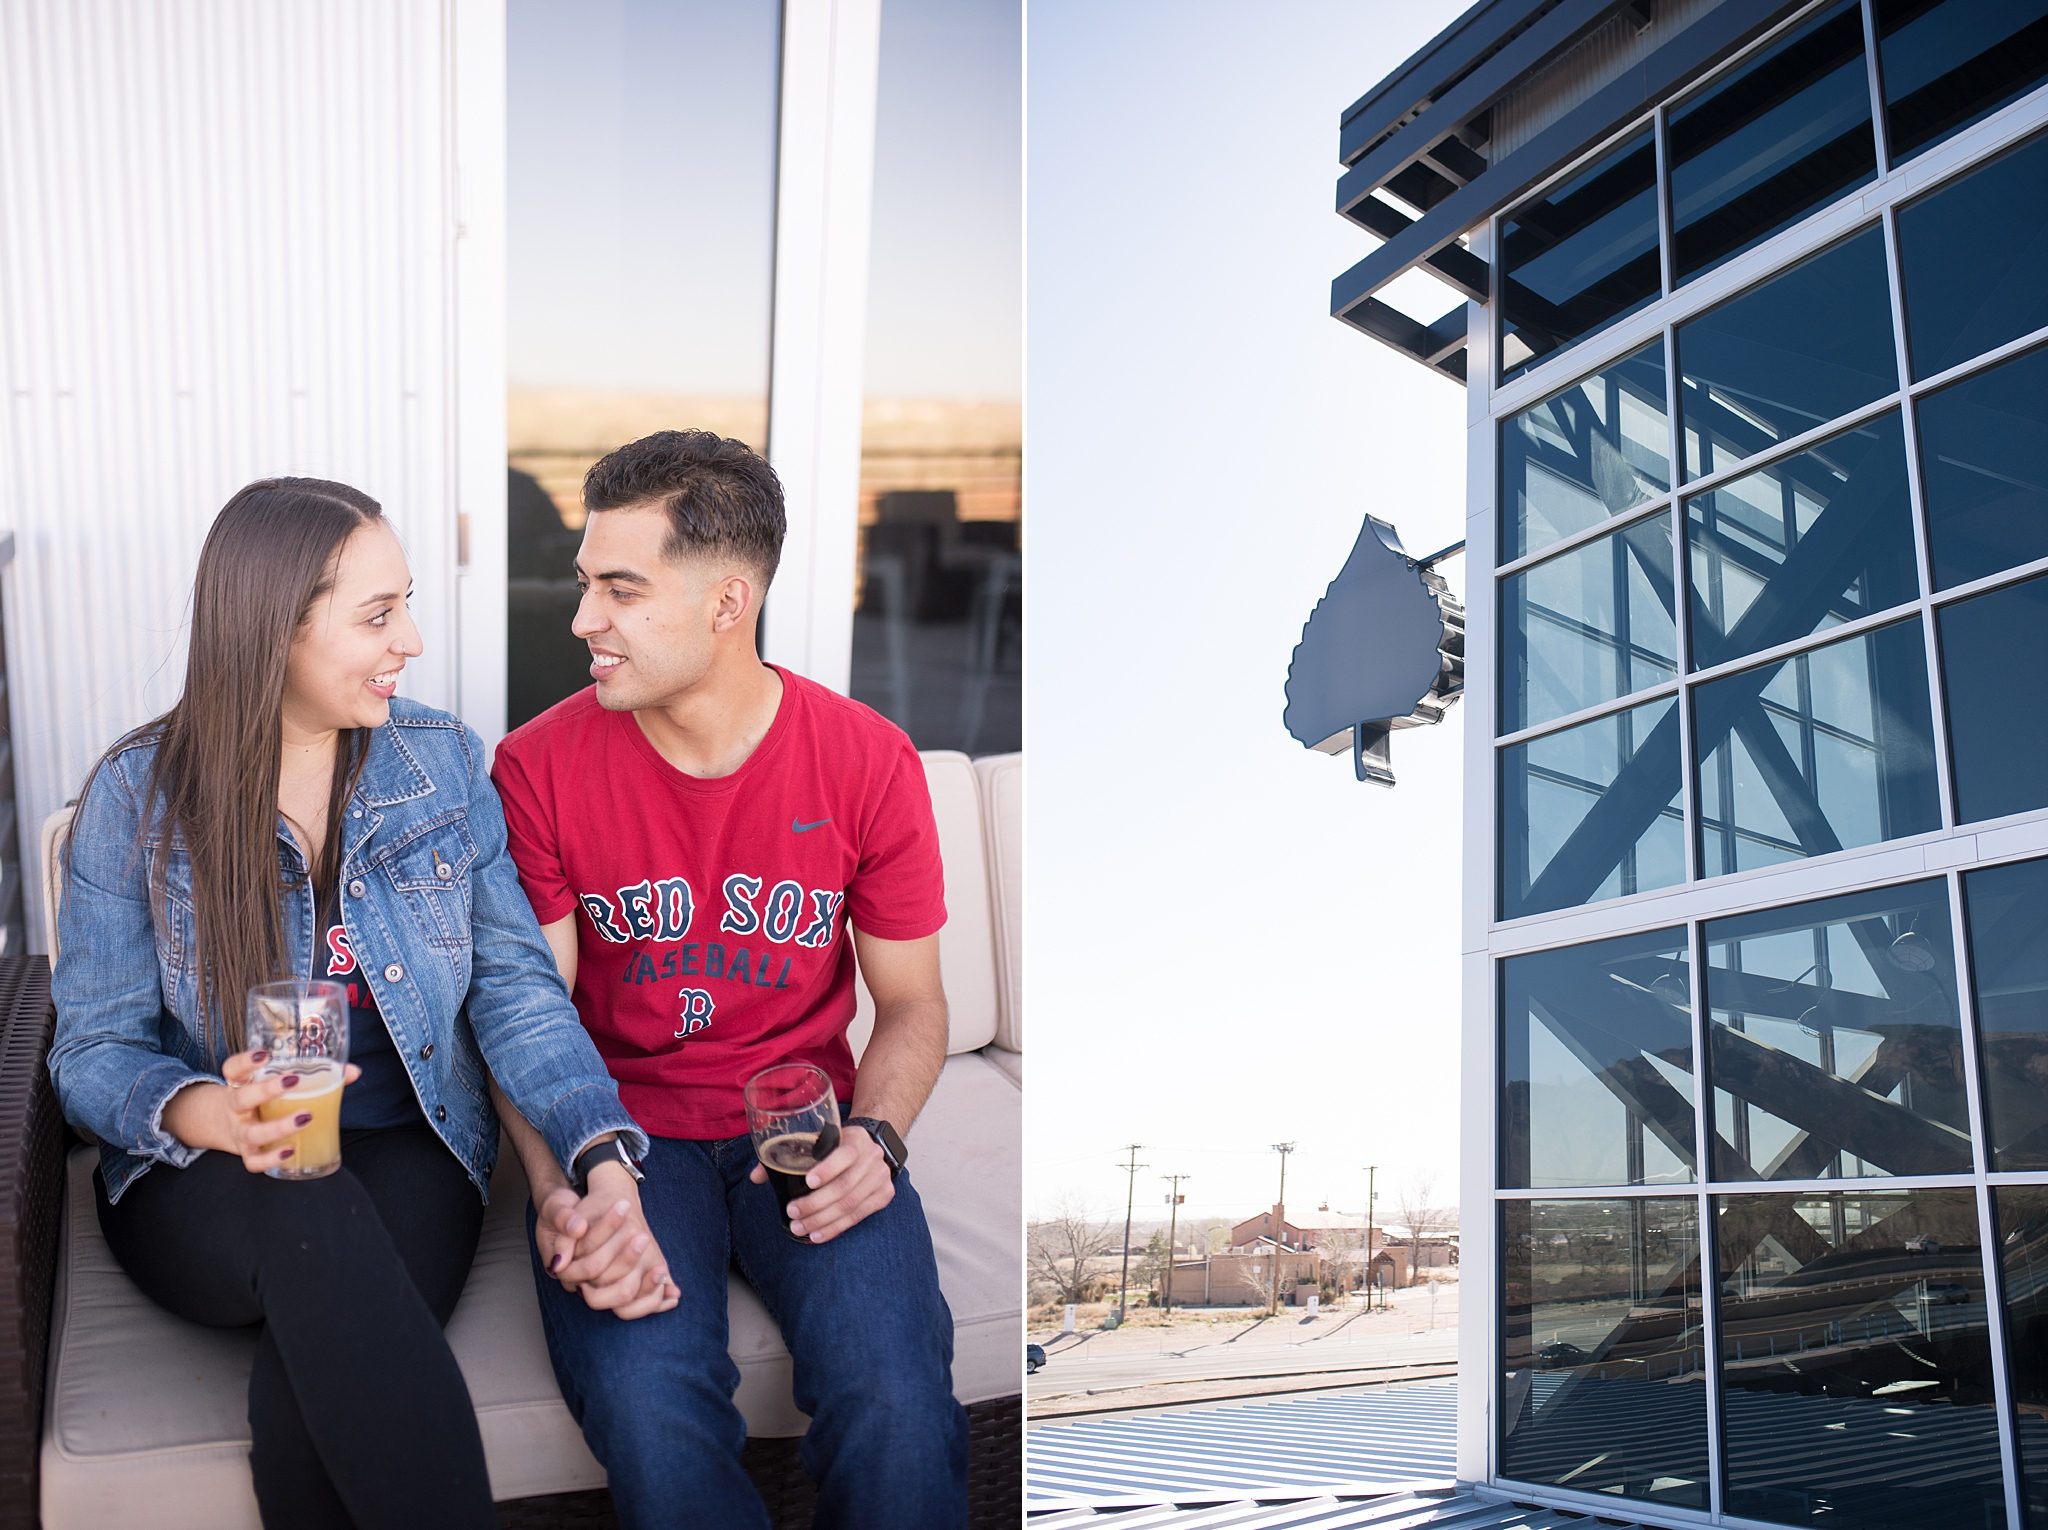 bosque brewery engagement session placitas mountains foothills albuquerque wedding photography new mexico wedding photographer kayla kitts photography_0009.jpg